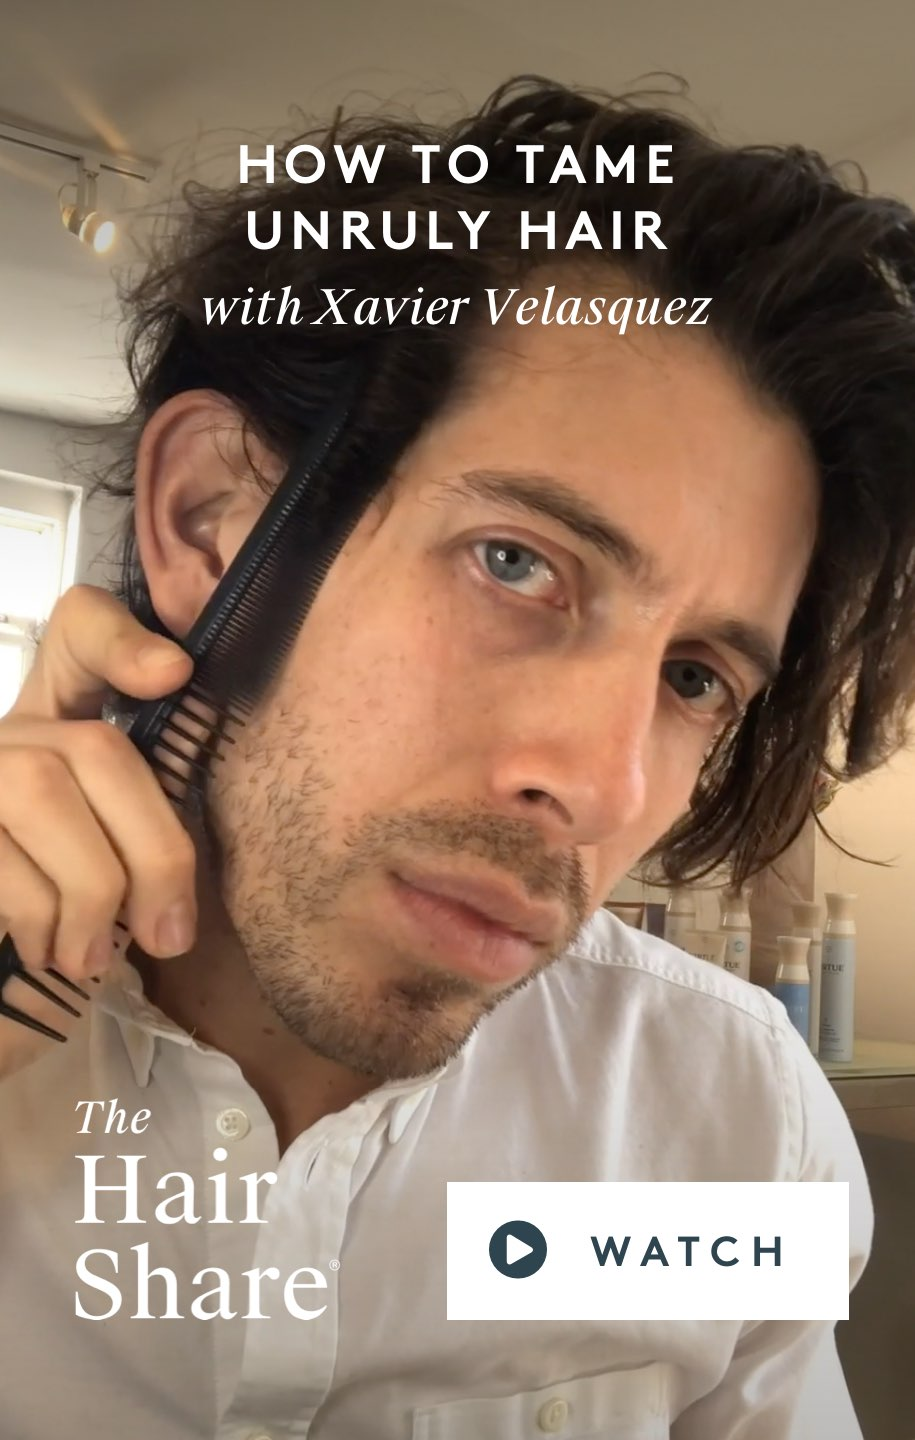 How To Tame Unruly Hair With Xavier Velasquez